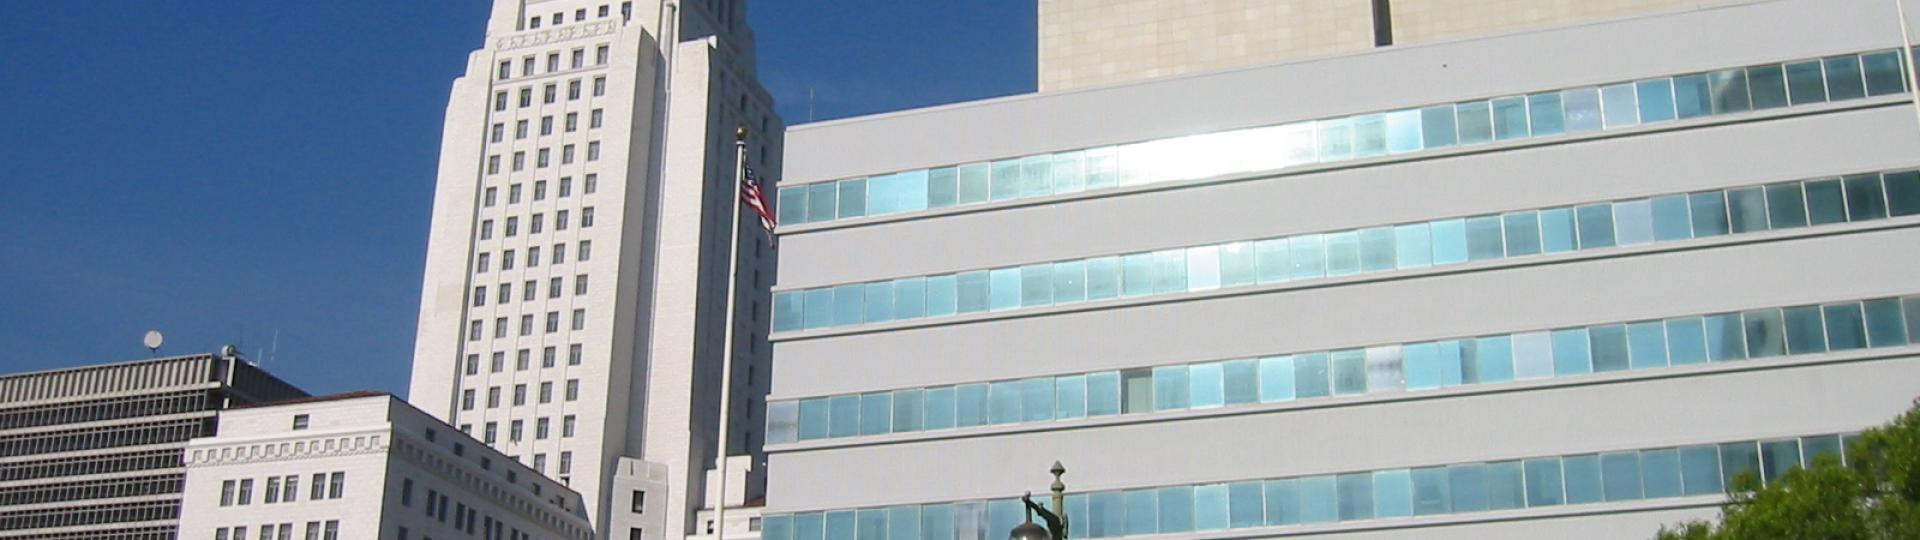 image of city hall south building